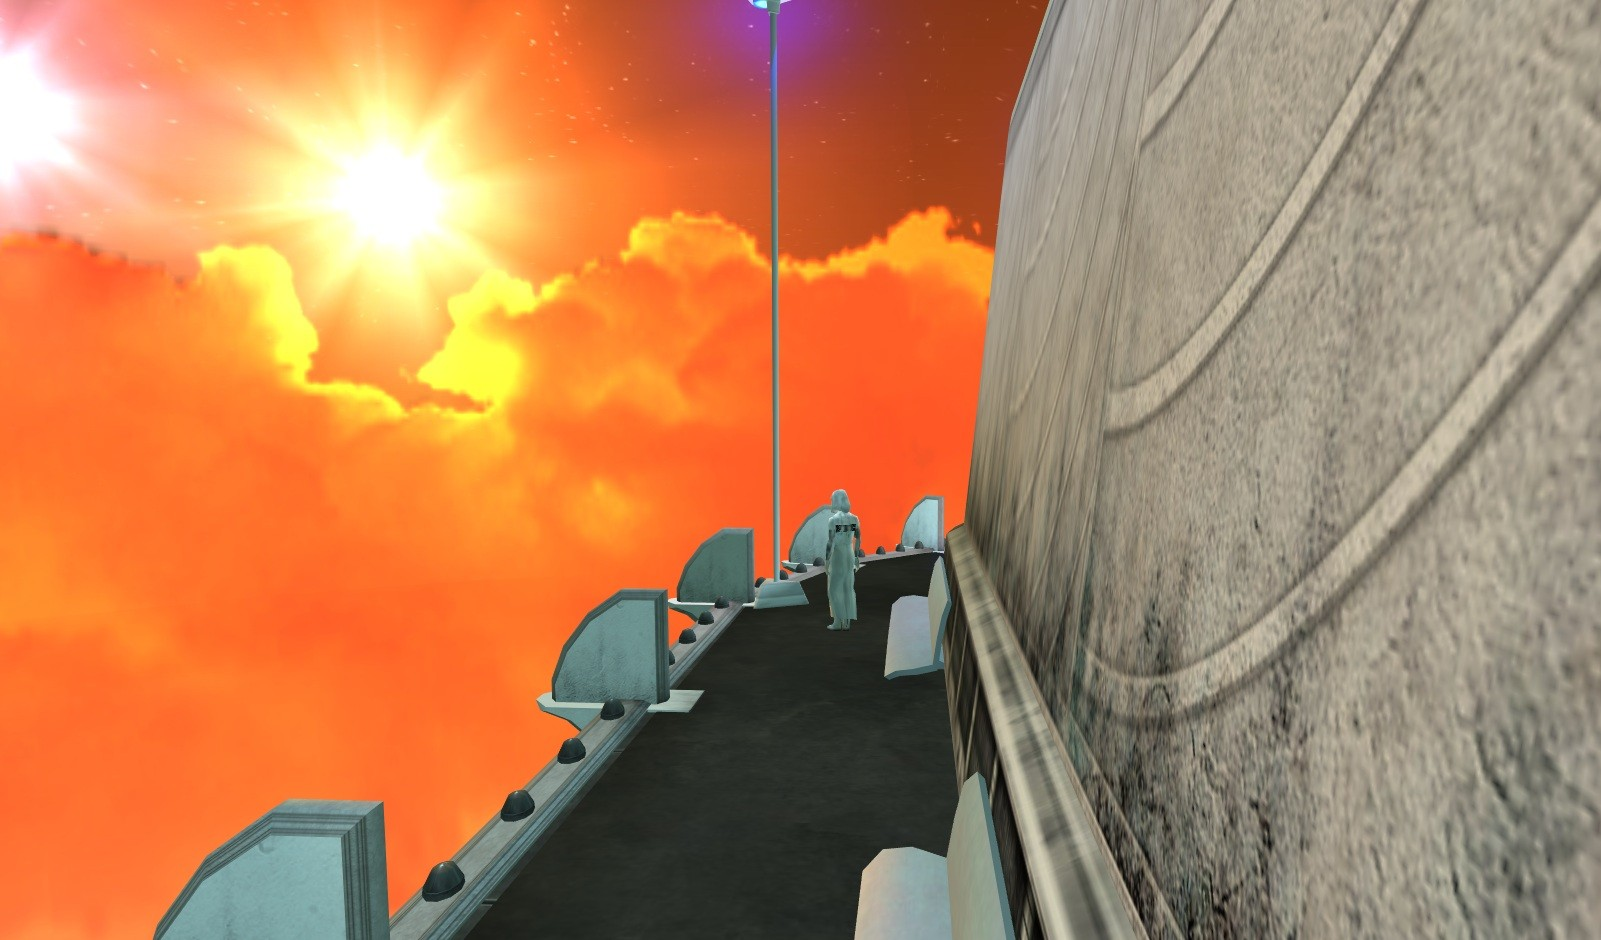 Anarchy Online - Sunset over Juliet's Balcony